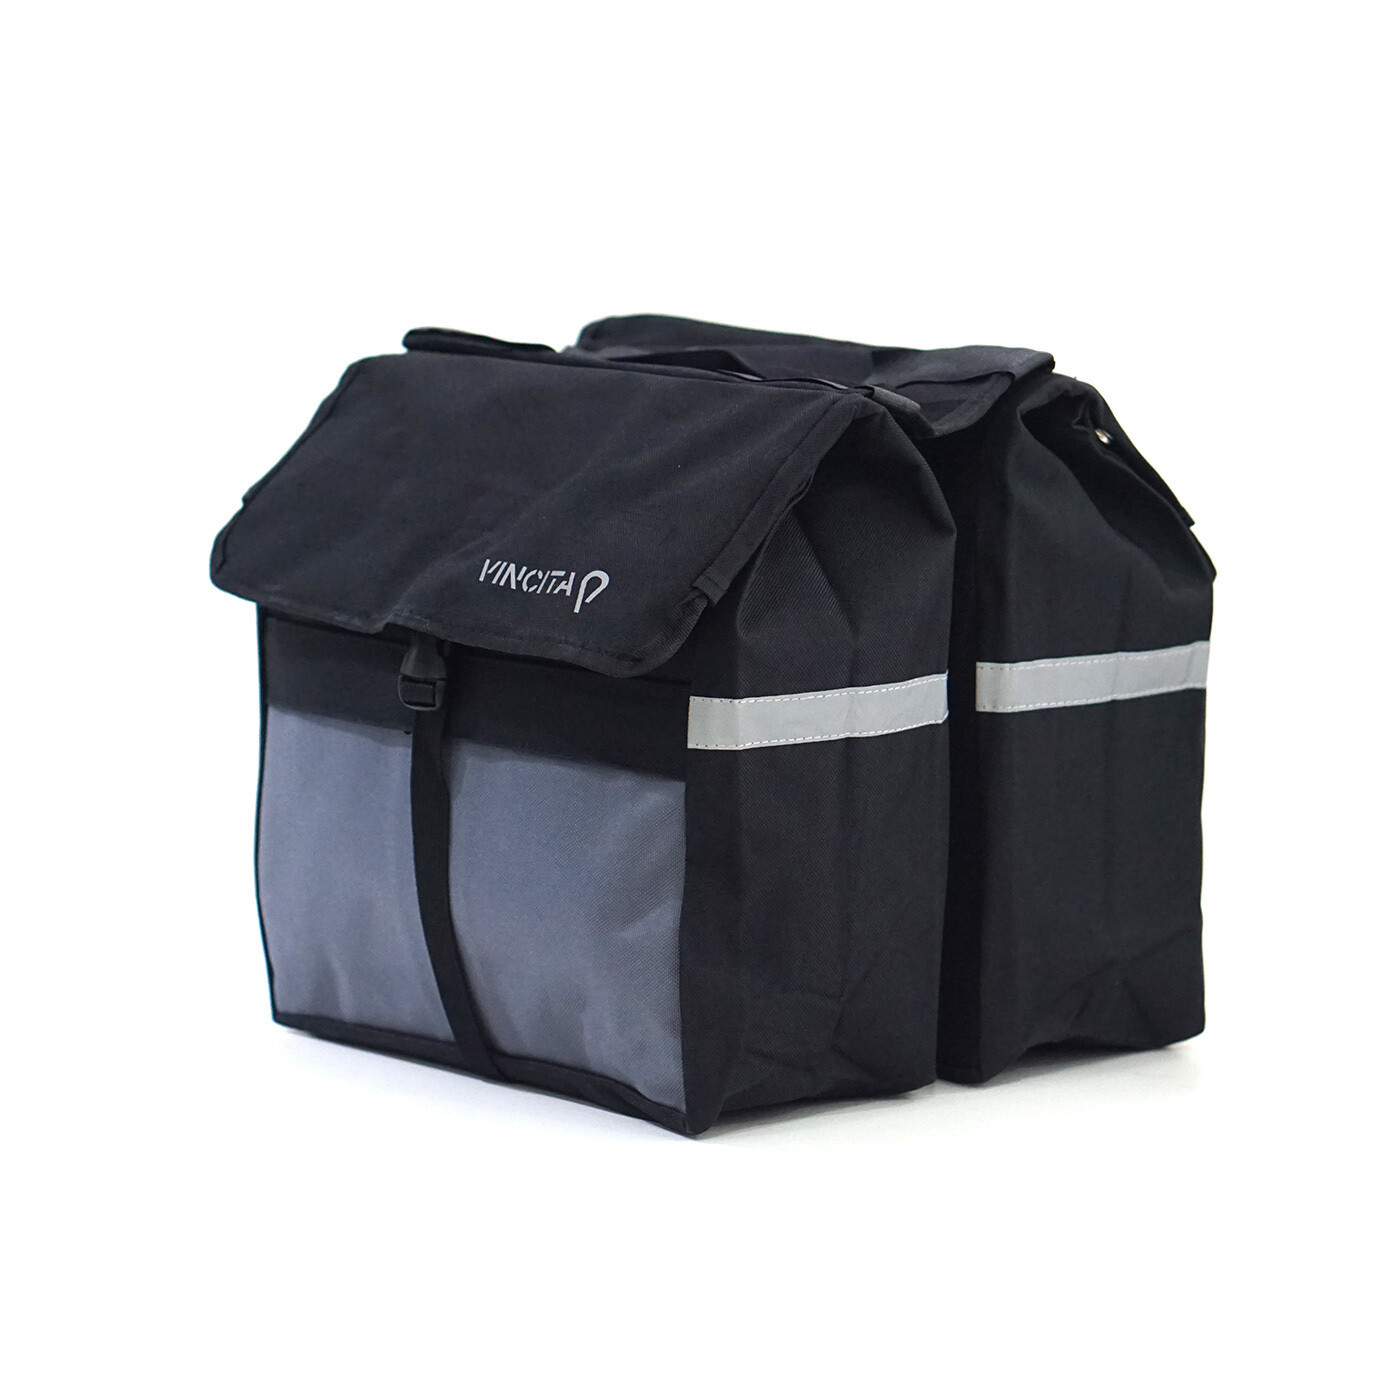 Bike Bag - Double Pannier Top Load